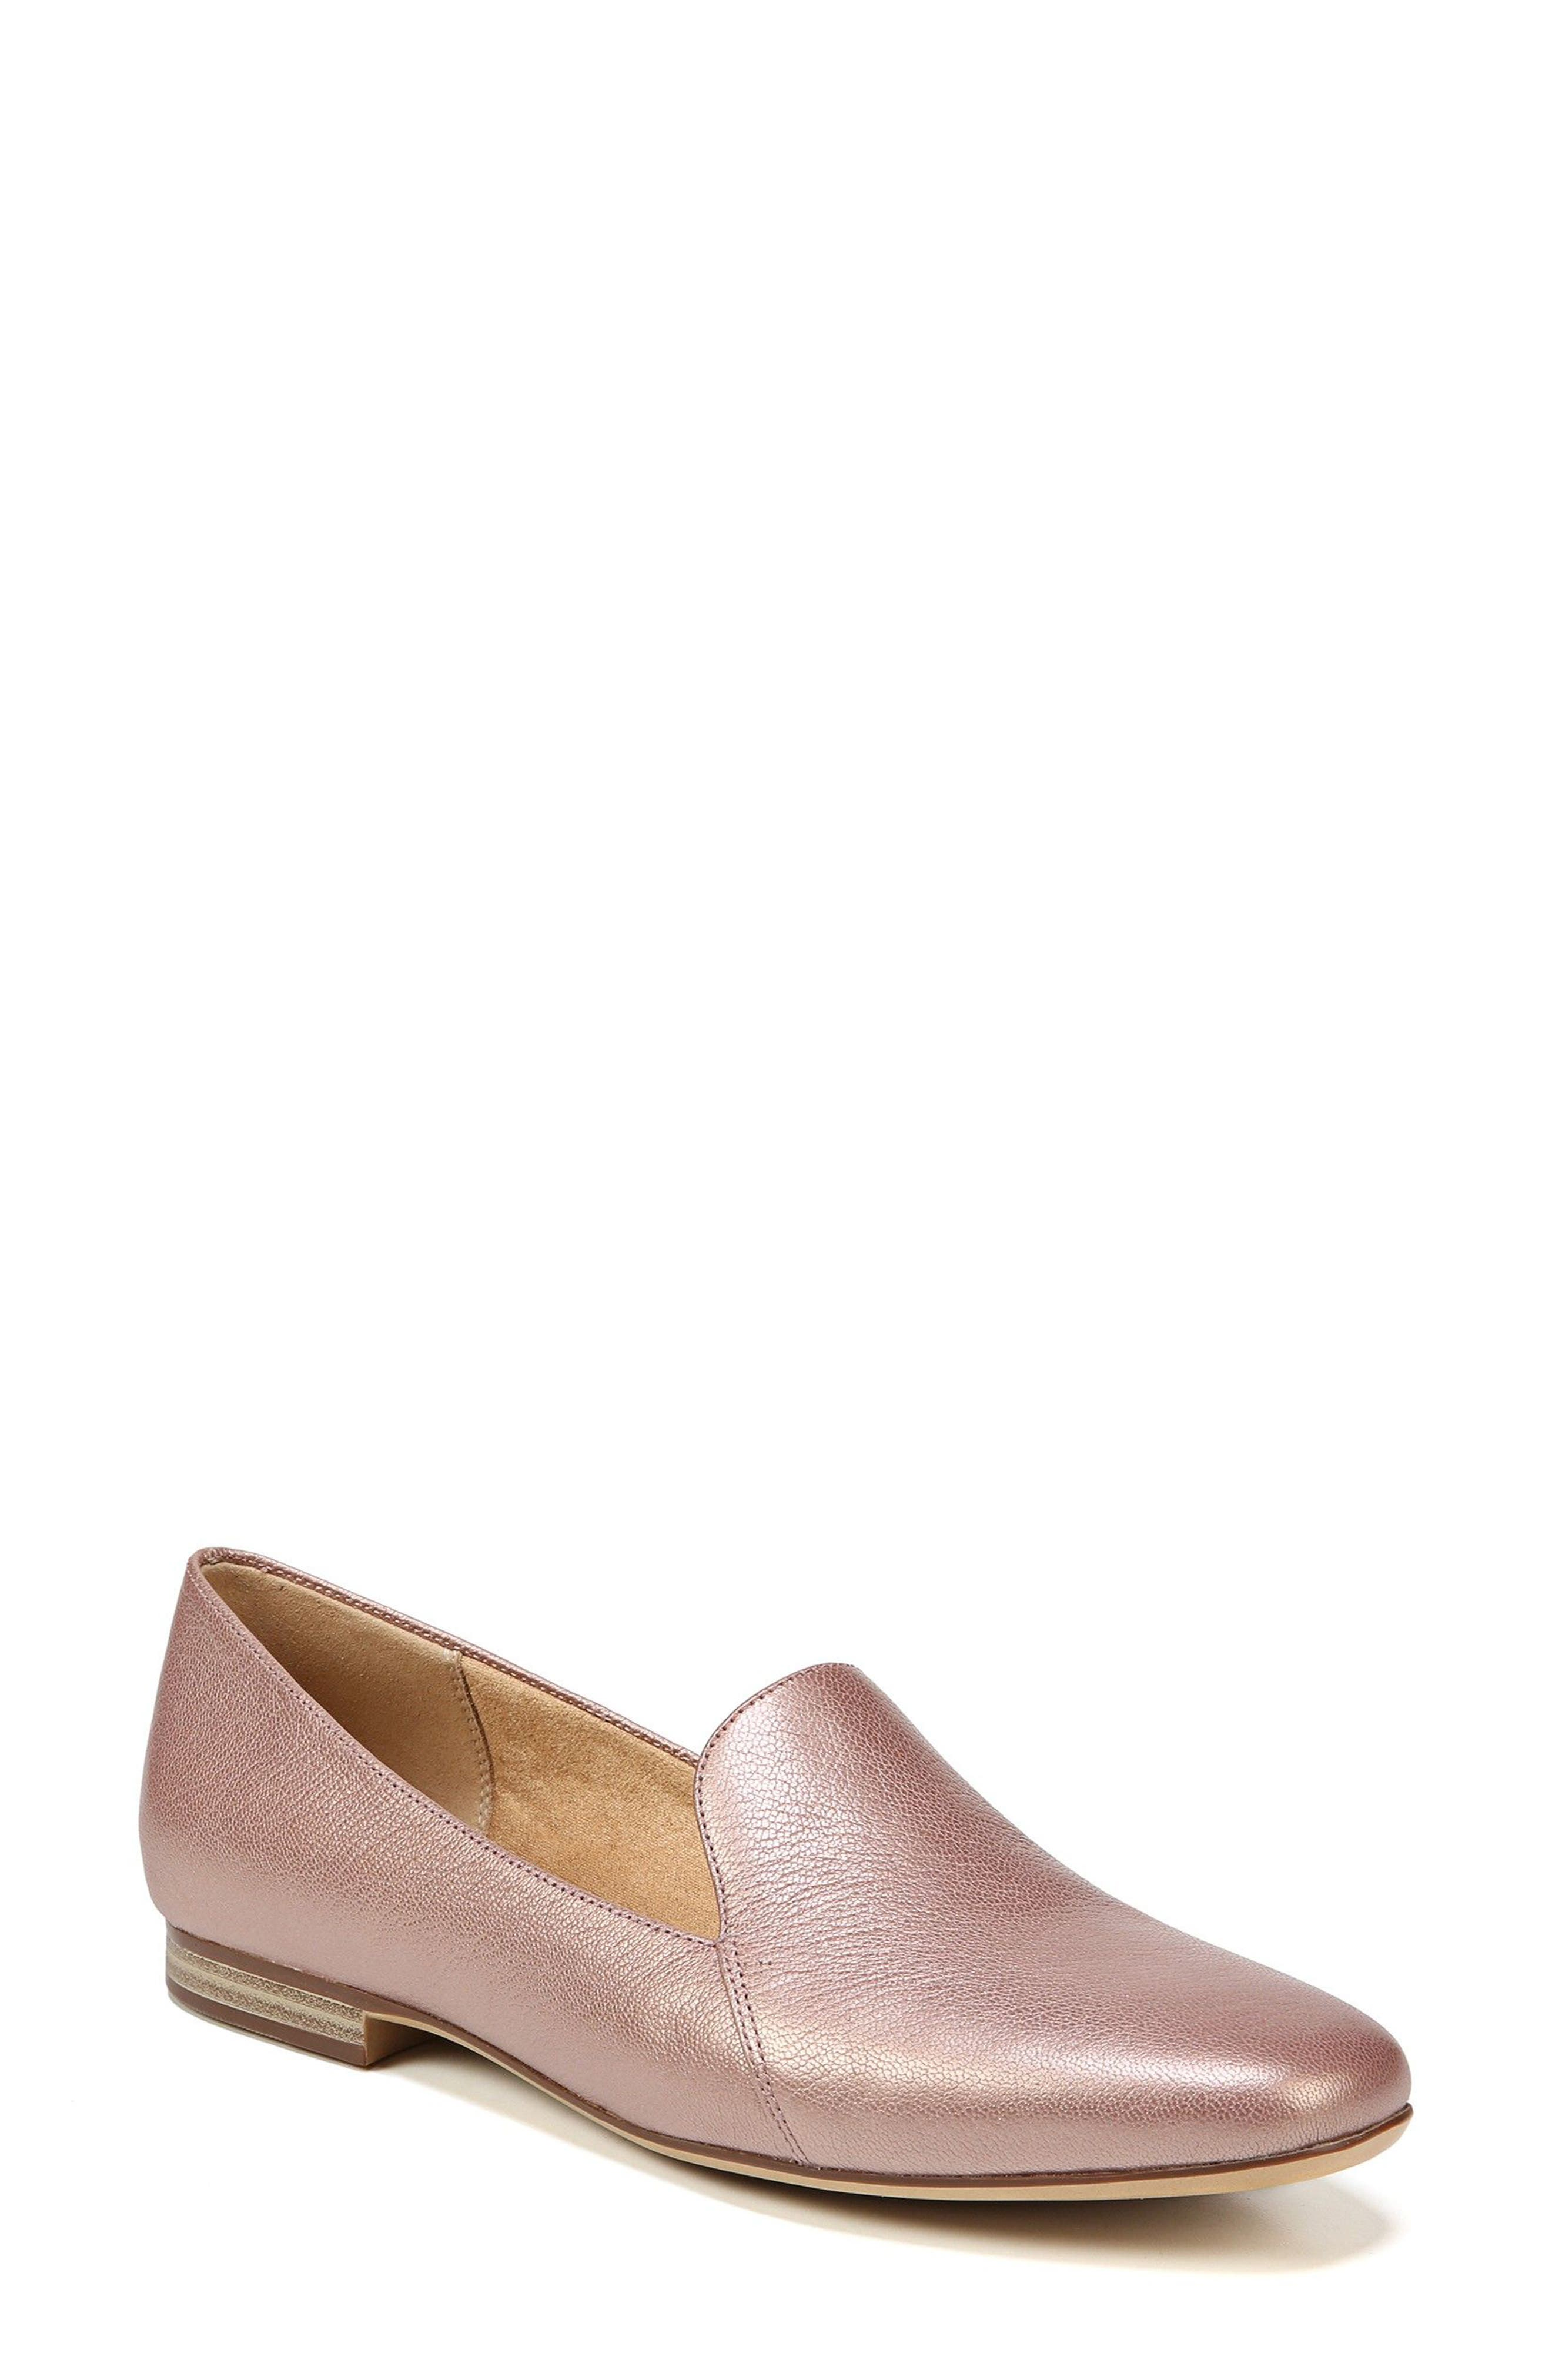 Emiline Flat Loafer,                             Main thumbnail 1, color,                             ROSE GOLD LEATHER